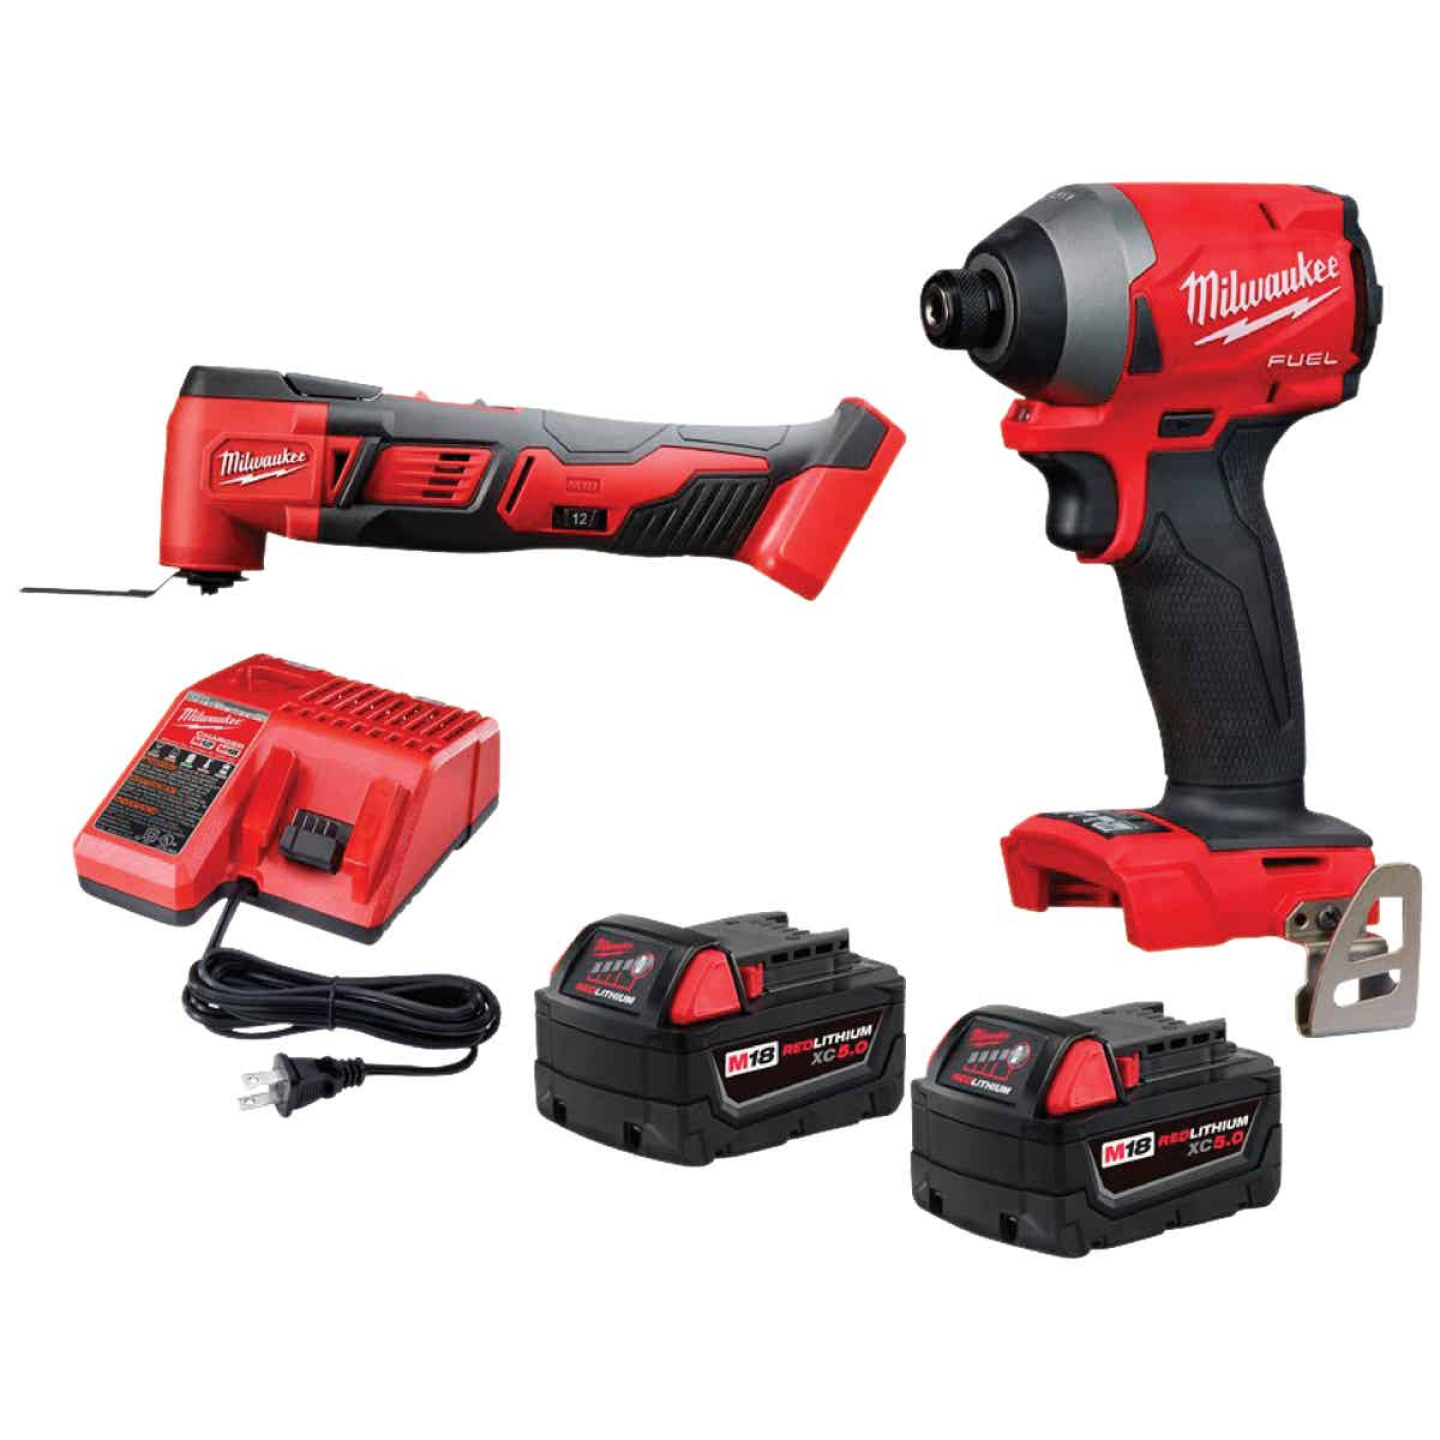 Milwaukee 2-Tool M18 FUEL Lithium-Ion Brushless Impact Driver & Multi-Tool Cordless Tool Combo Kit Image 1